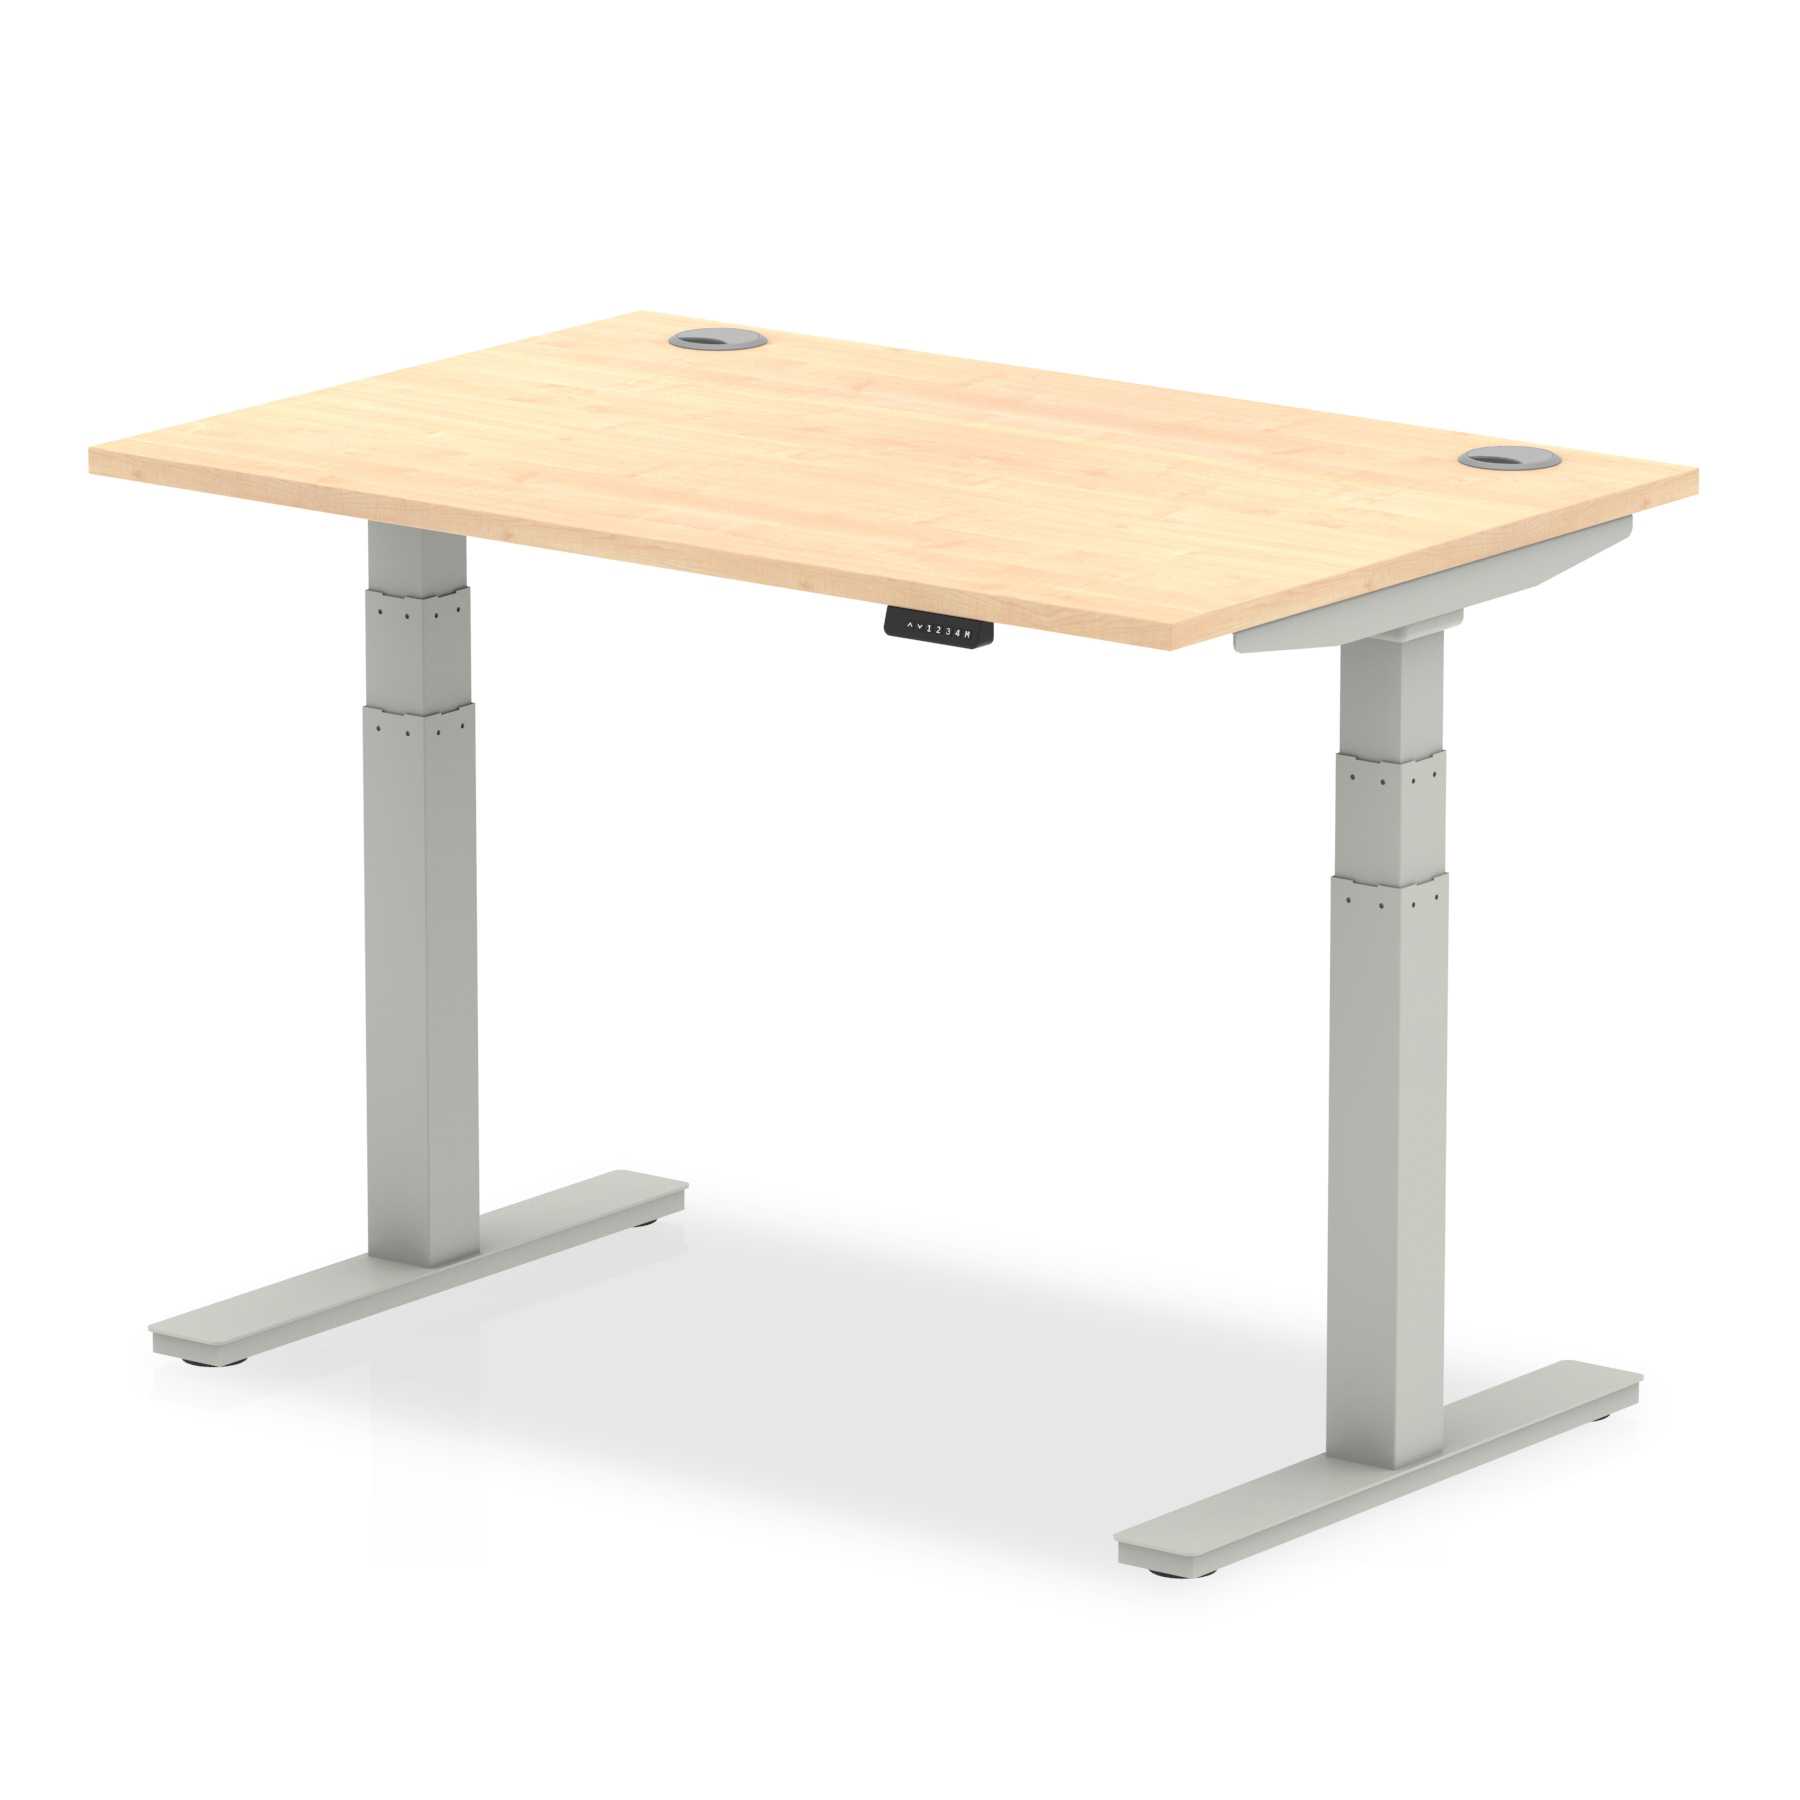 Trexus Sit Stand Desk With Cable Ports Silver Legs 1200x800mm Maple Ref HA01093